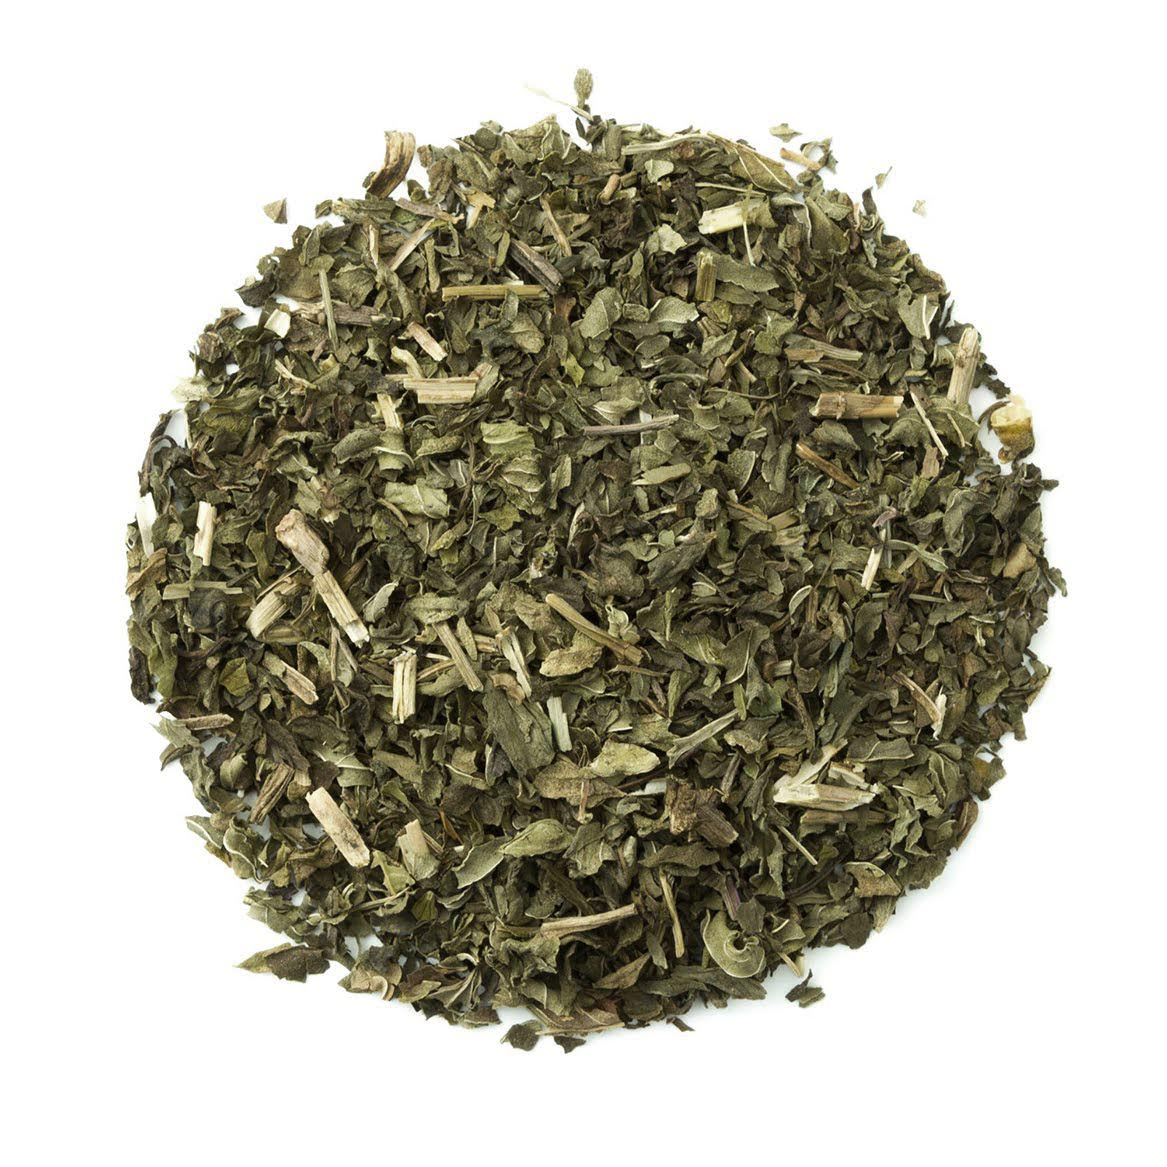 Loose Leaf Iced Tea - Organic Iced Tea - Loose Teas for Homemade Iced Tea - Heavenly Tea Leaves